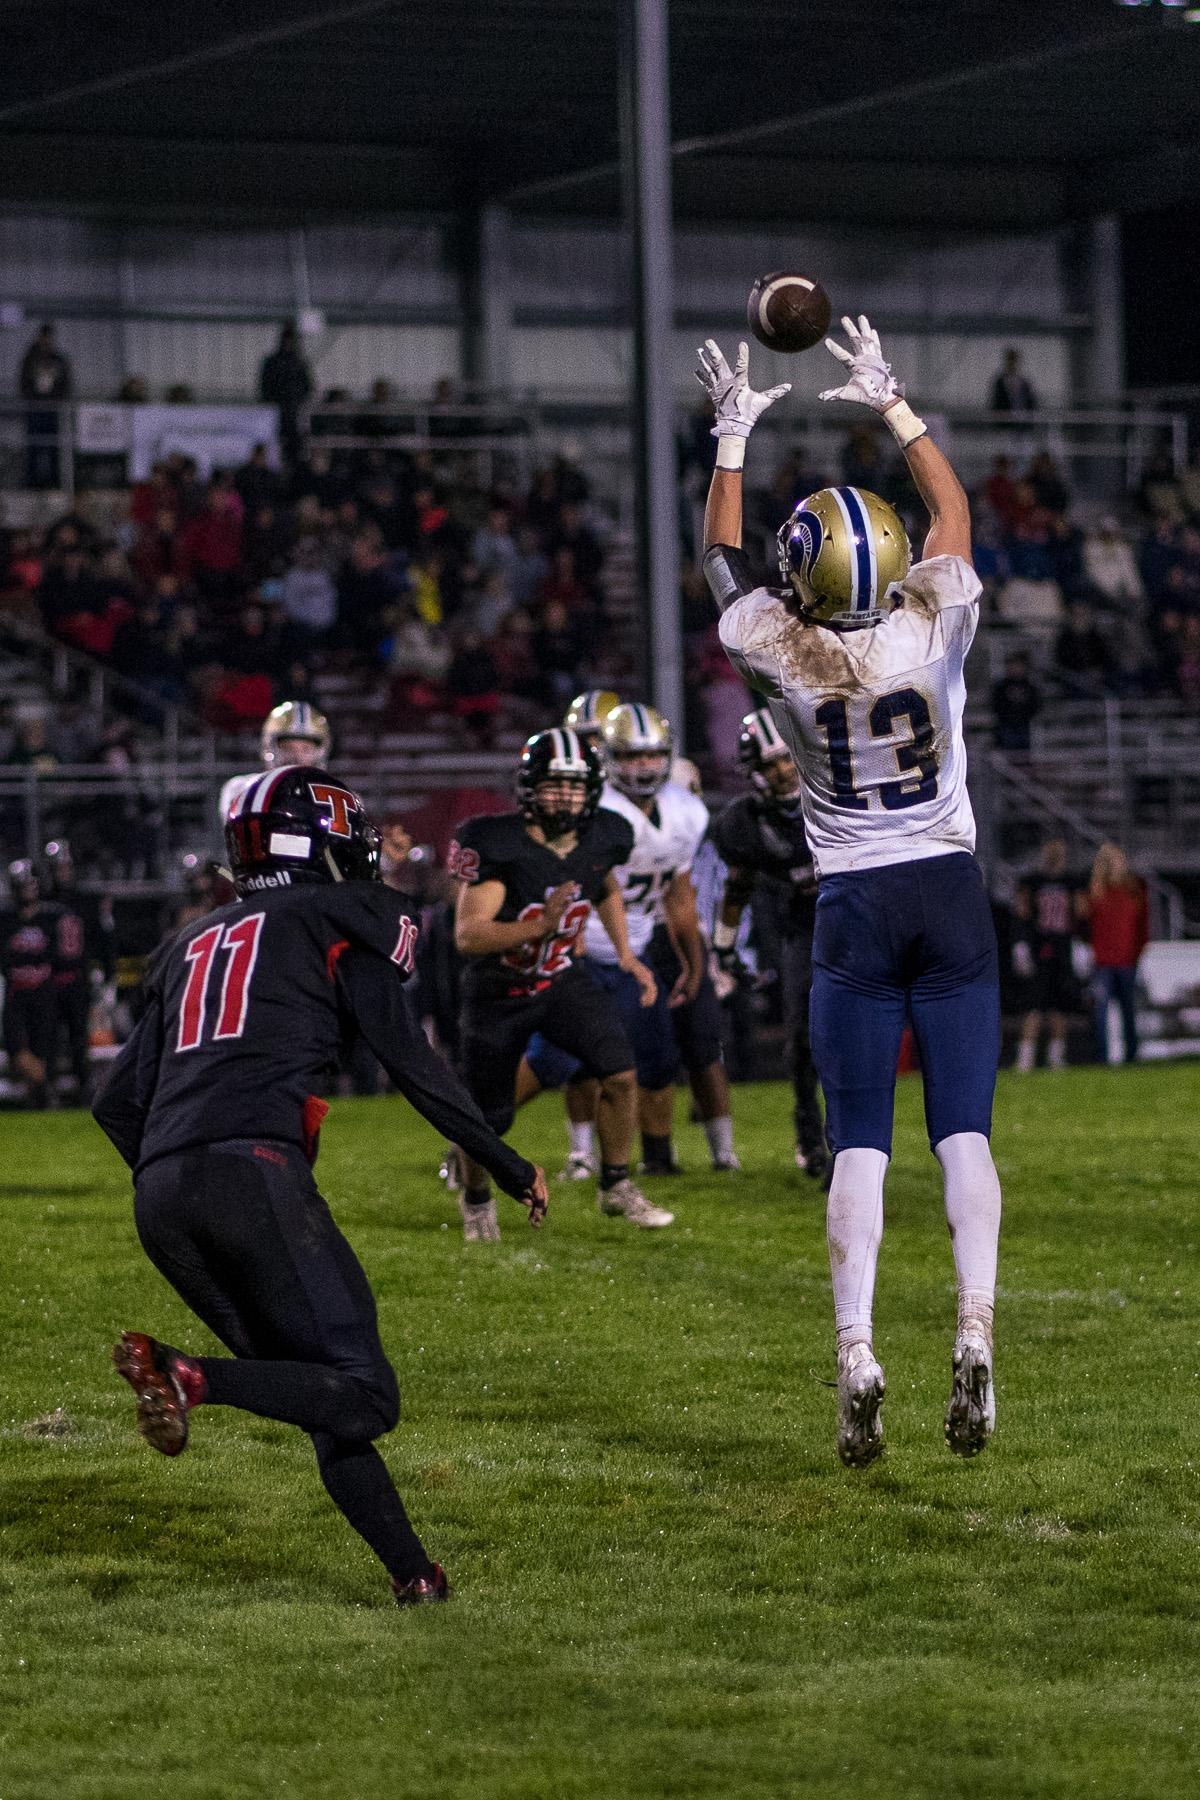 Marist Spartan Hagan Stephenson (#13) completes a reception. The Thurston Colts defeated the Marist Catholic Spartans 50 – 14 to seal second place in their conference at Thurston High School on Friday, October 13. Photo by Kit MacAvoy, Oregon News Lab